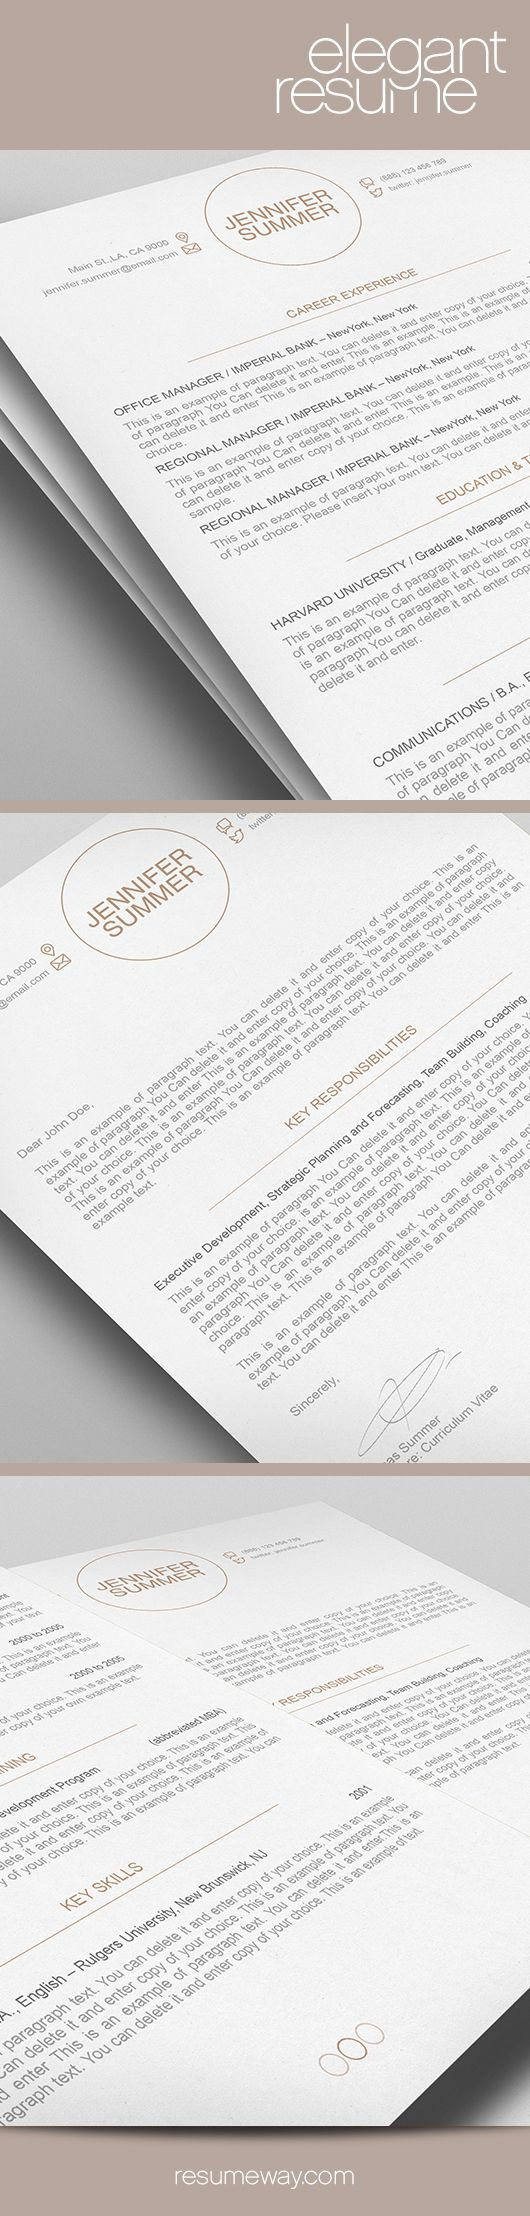 best ideas about nursing cover letter cover elegant resume template premium line of resume cover letter templates easy edit